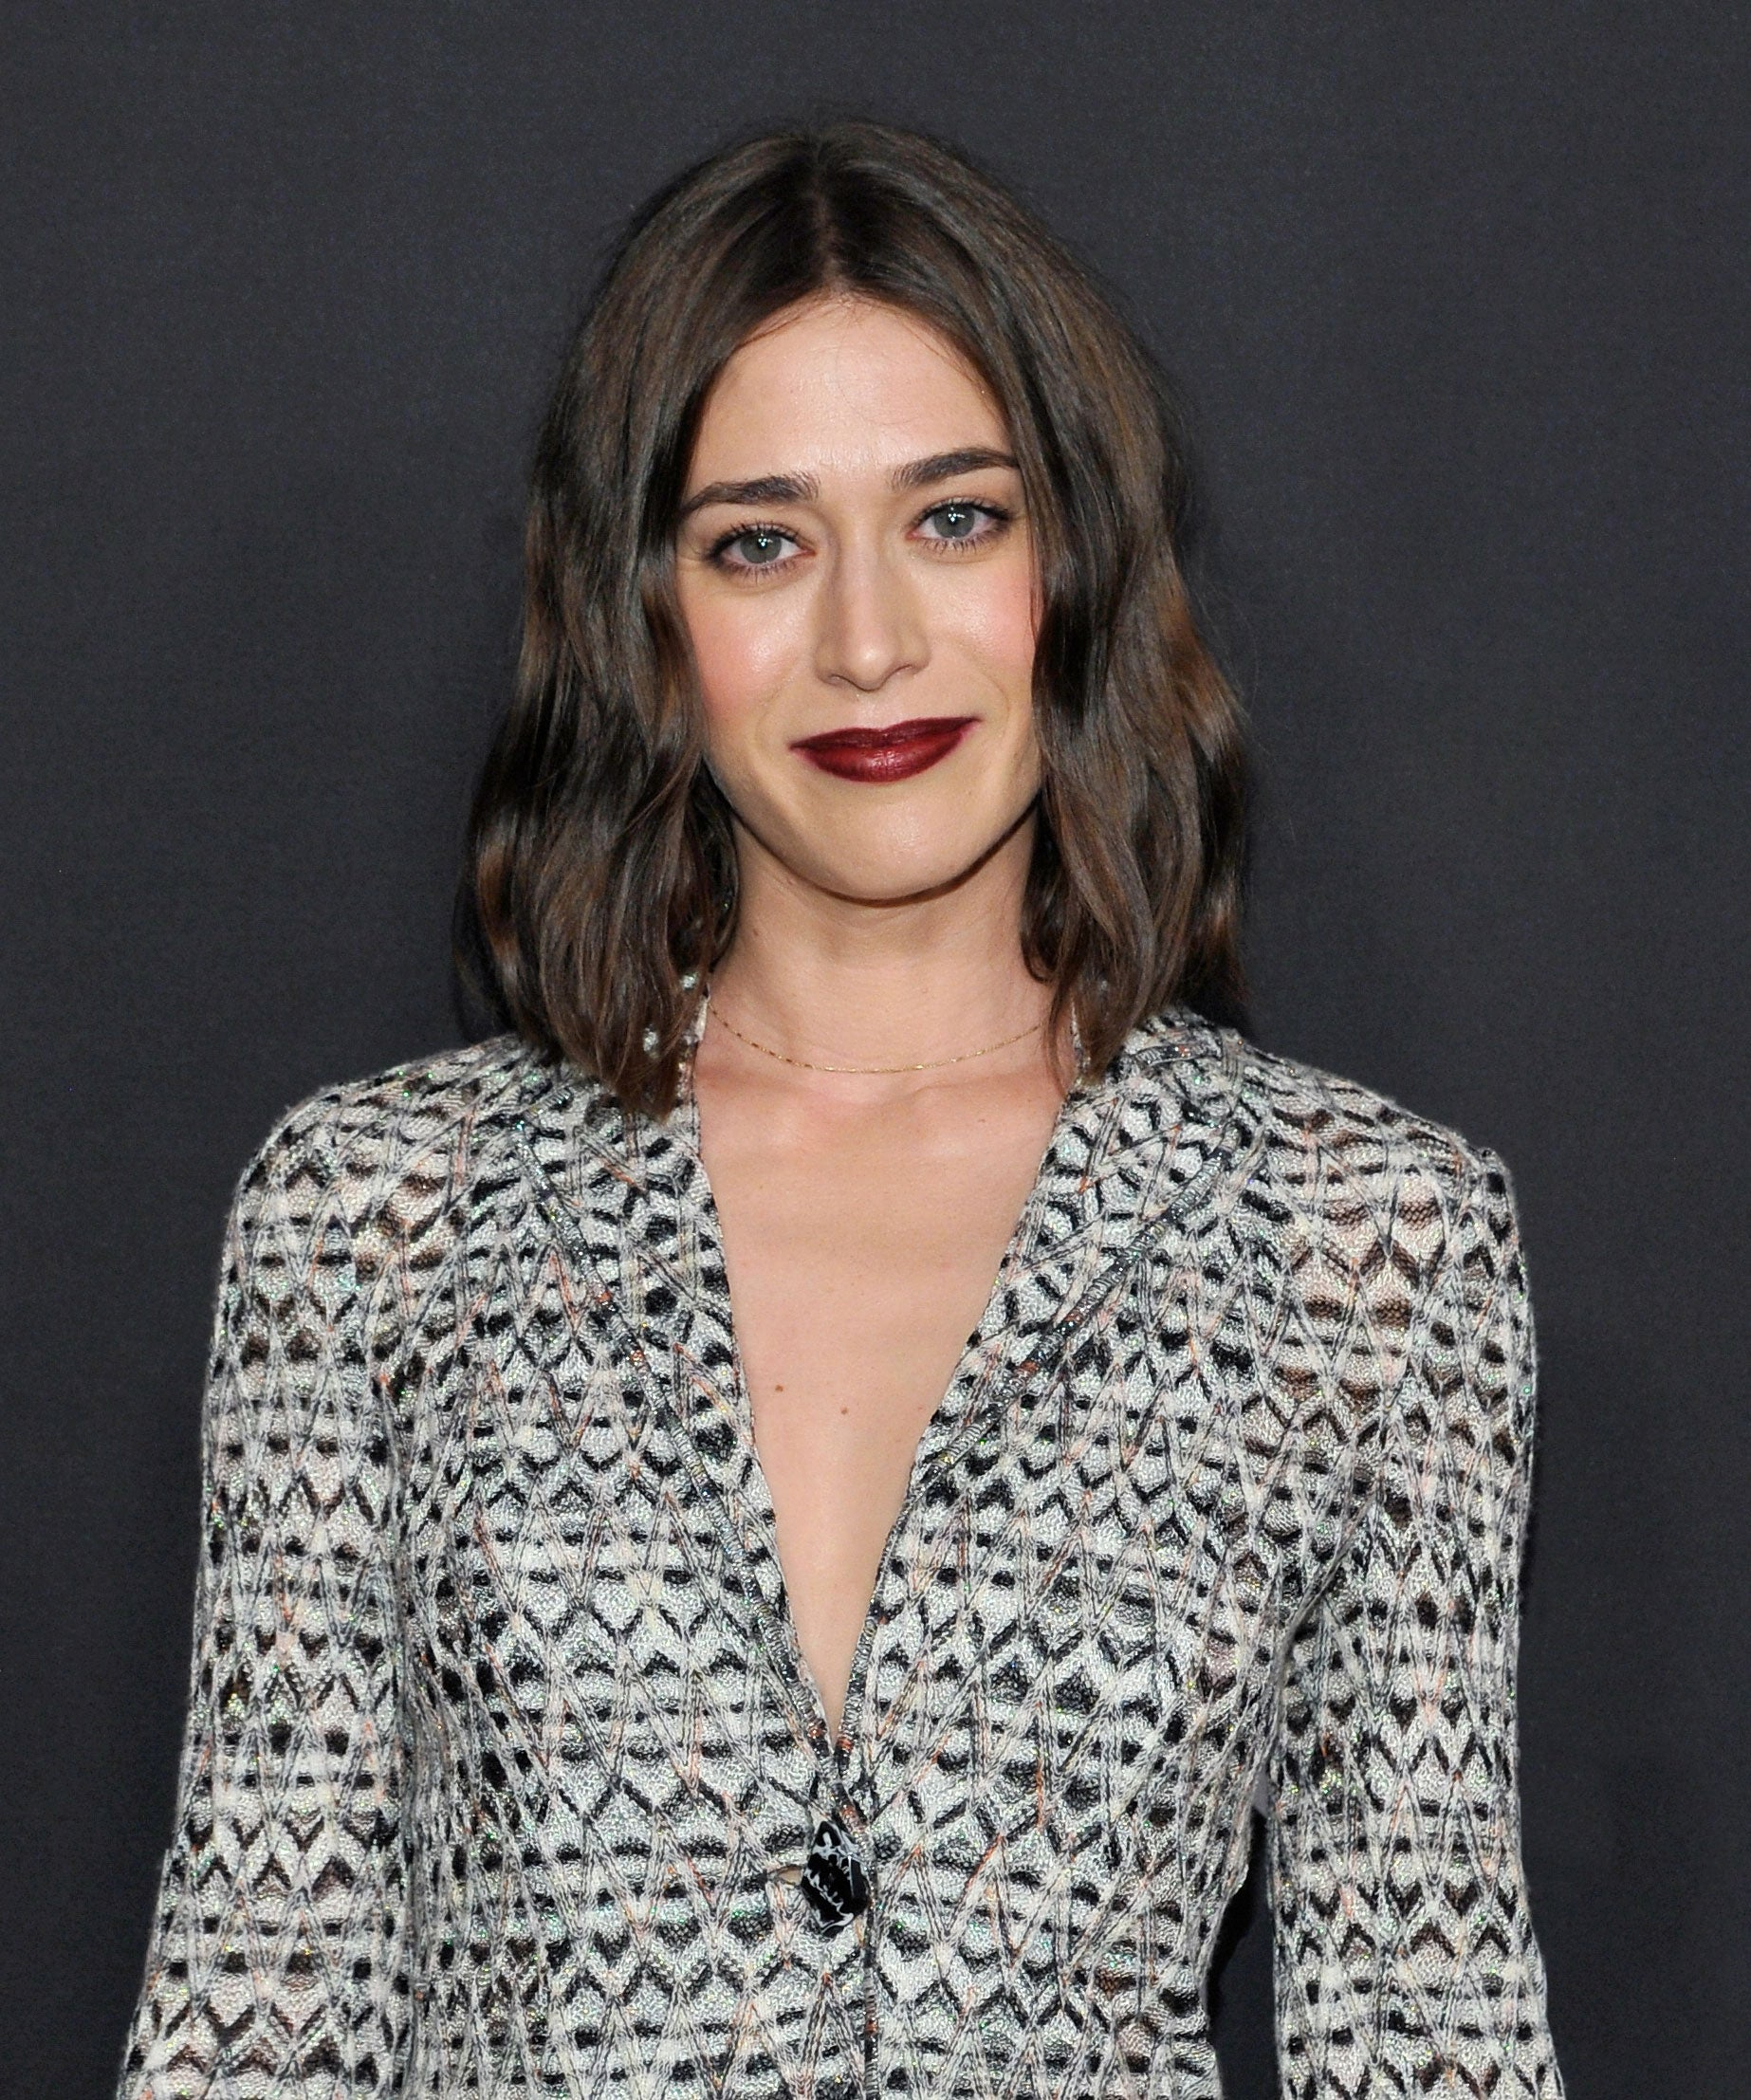 Truth Be Told's Lizzy Caplan Proves Her Greatest Co-Star Is Herself